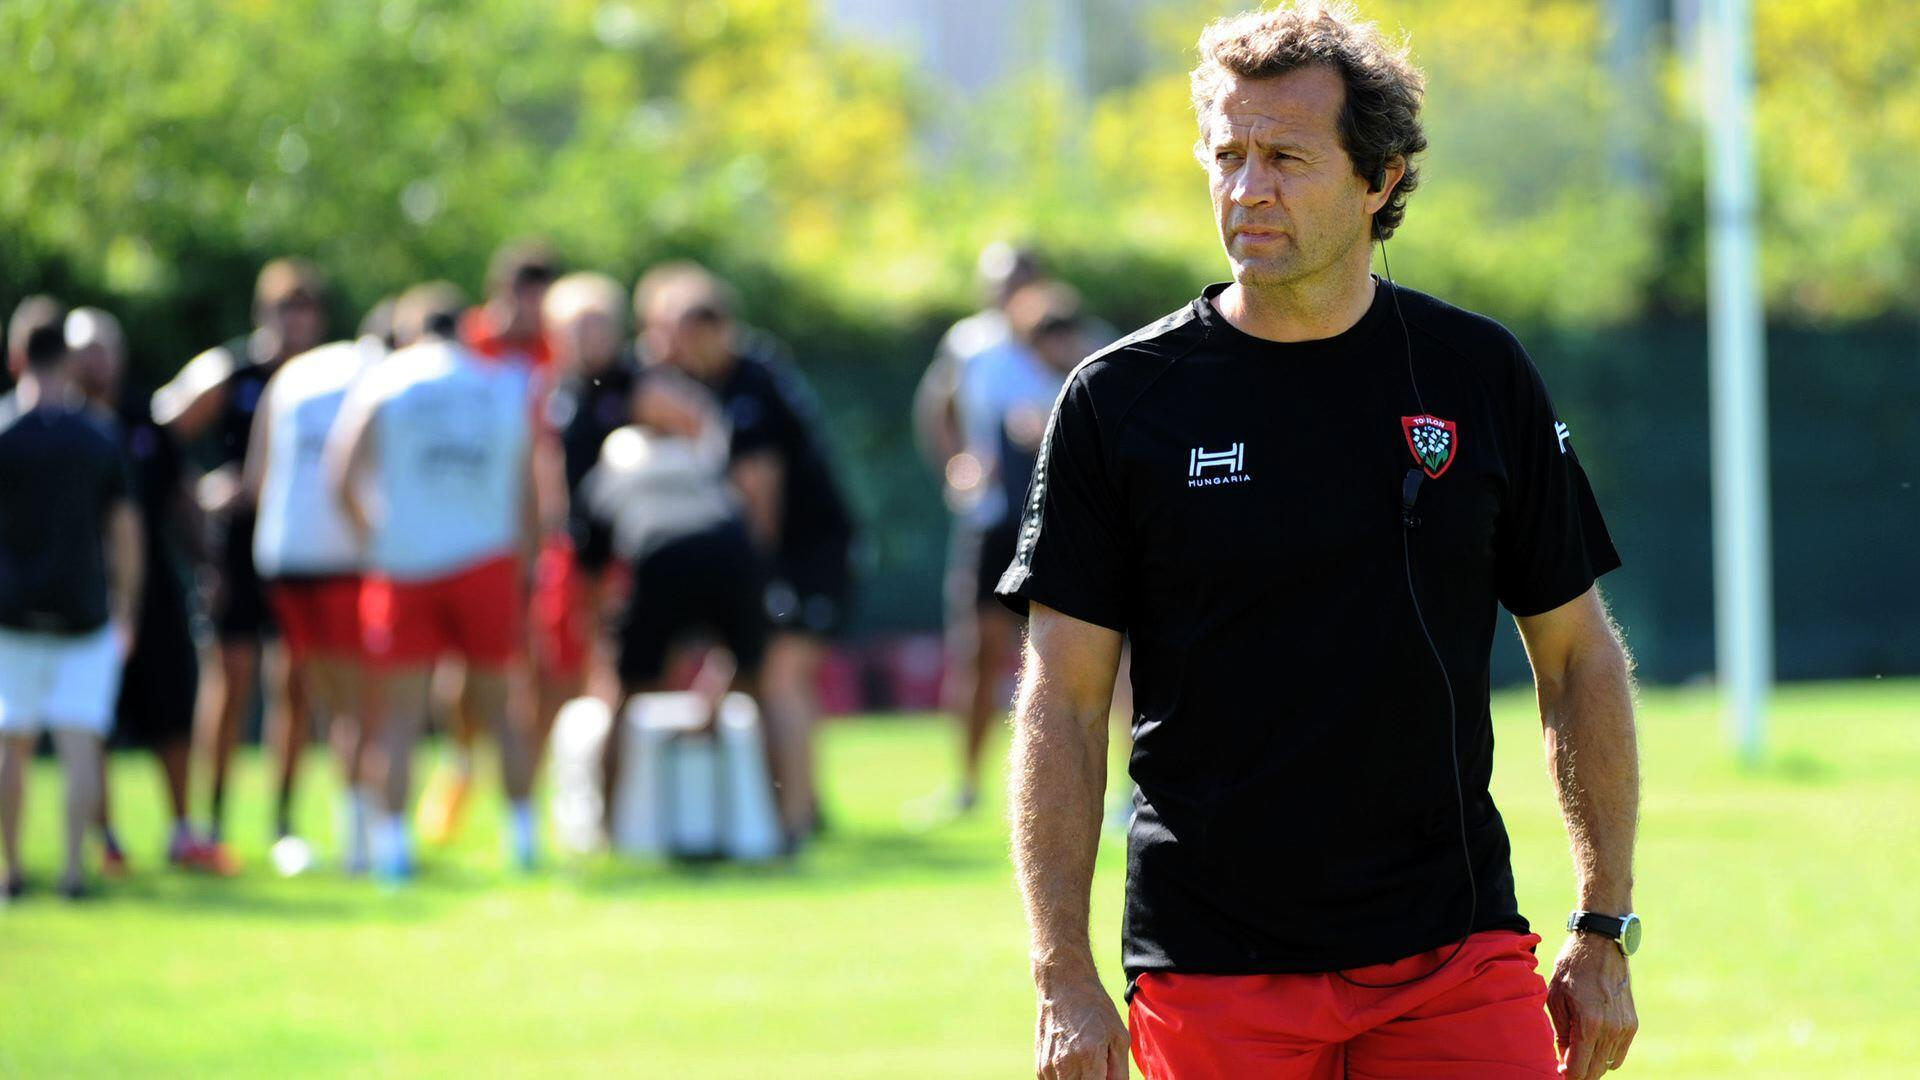 France rugby union coach Fabien Galthié has steered his side to the top of the Six Nations tournament table with three victories.